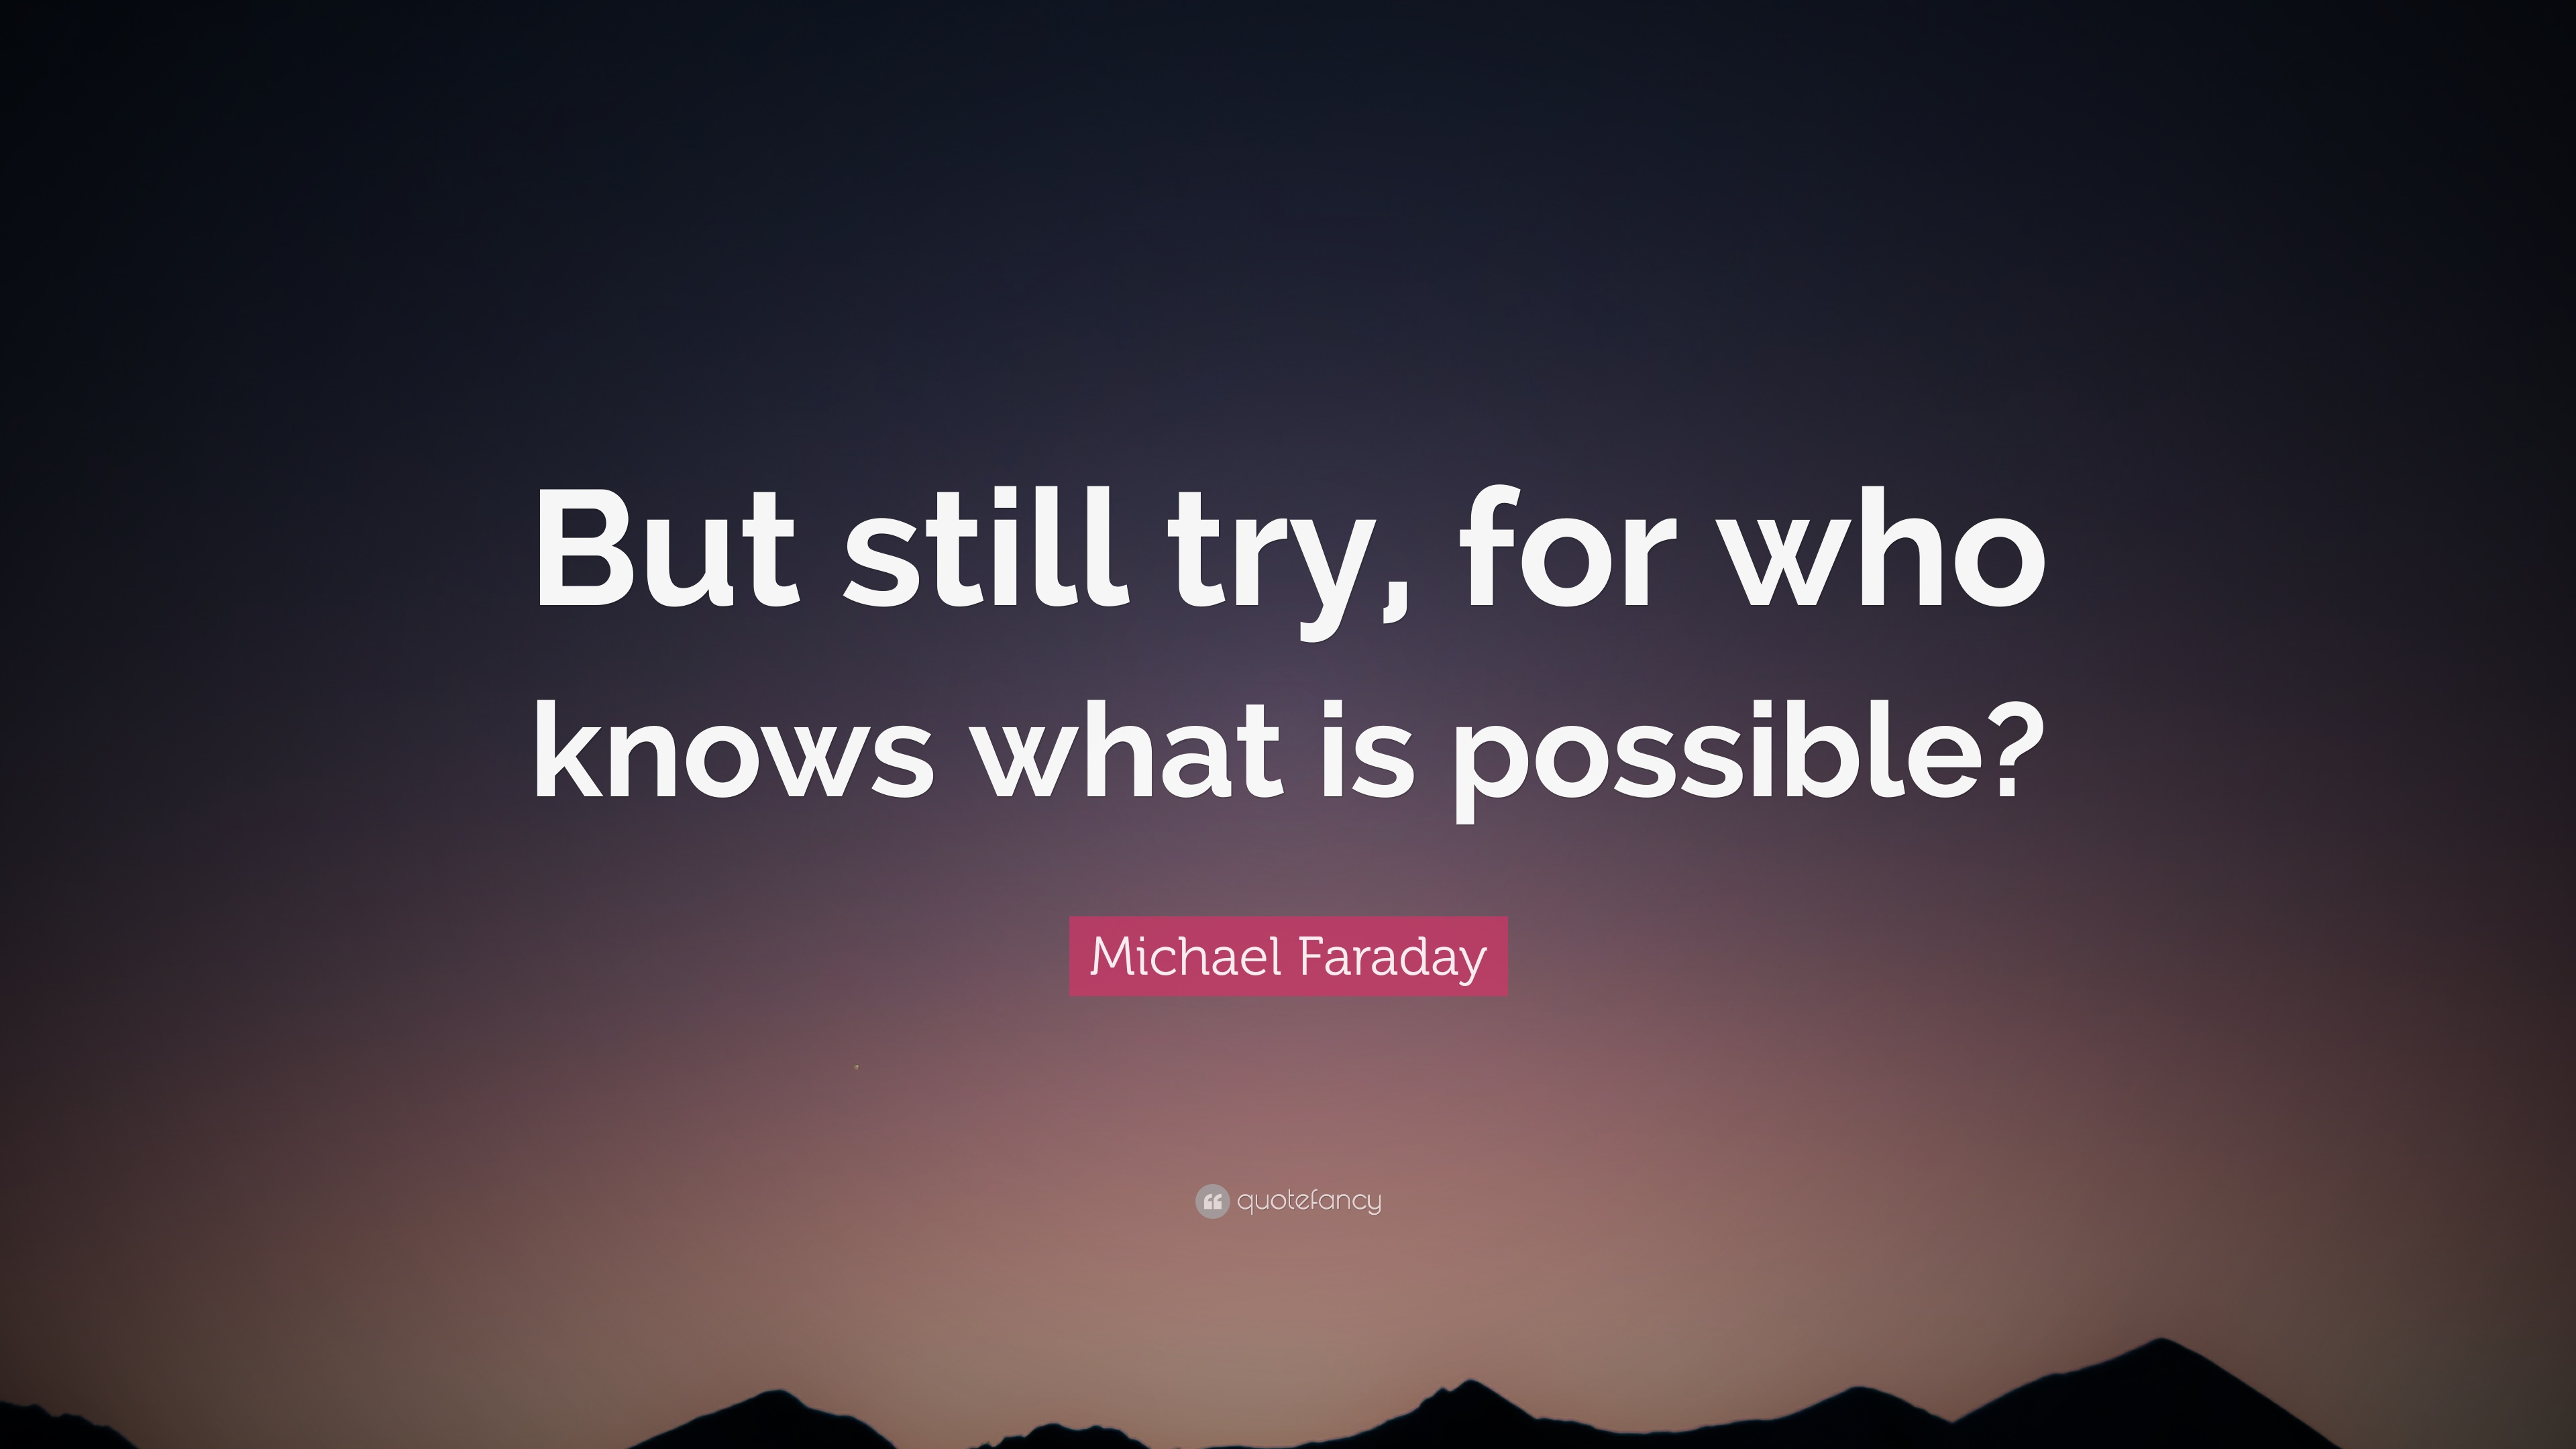 Beautiful Life Wallpapers With Quotes Michael Faraday Quotes 42 Wallpapers Quotefancy